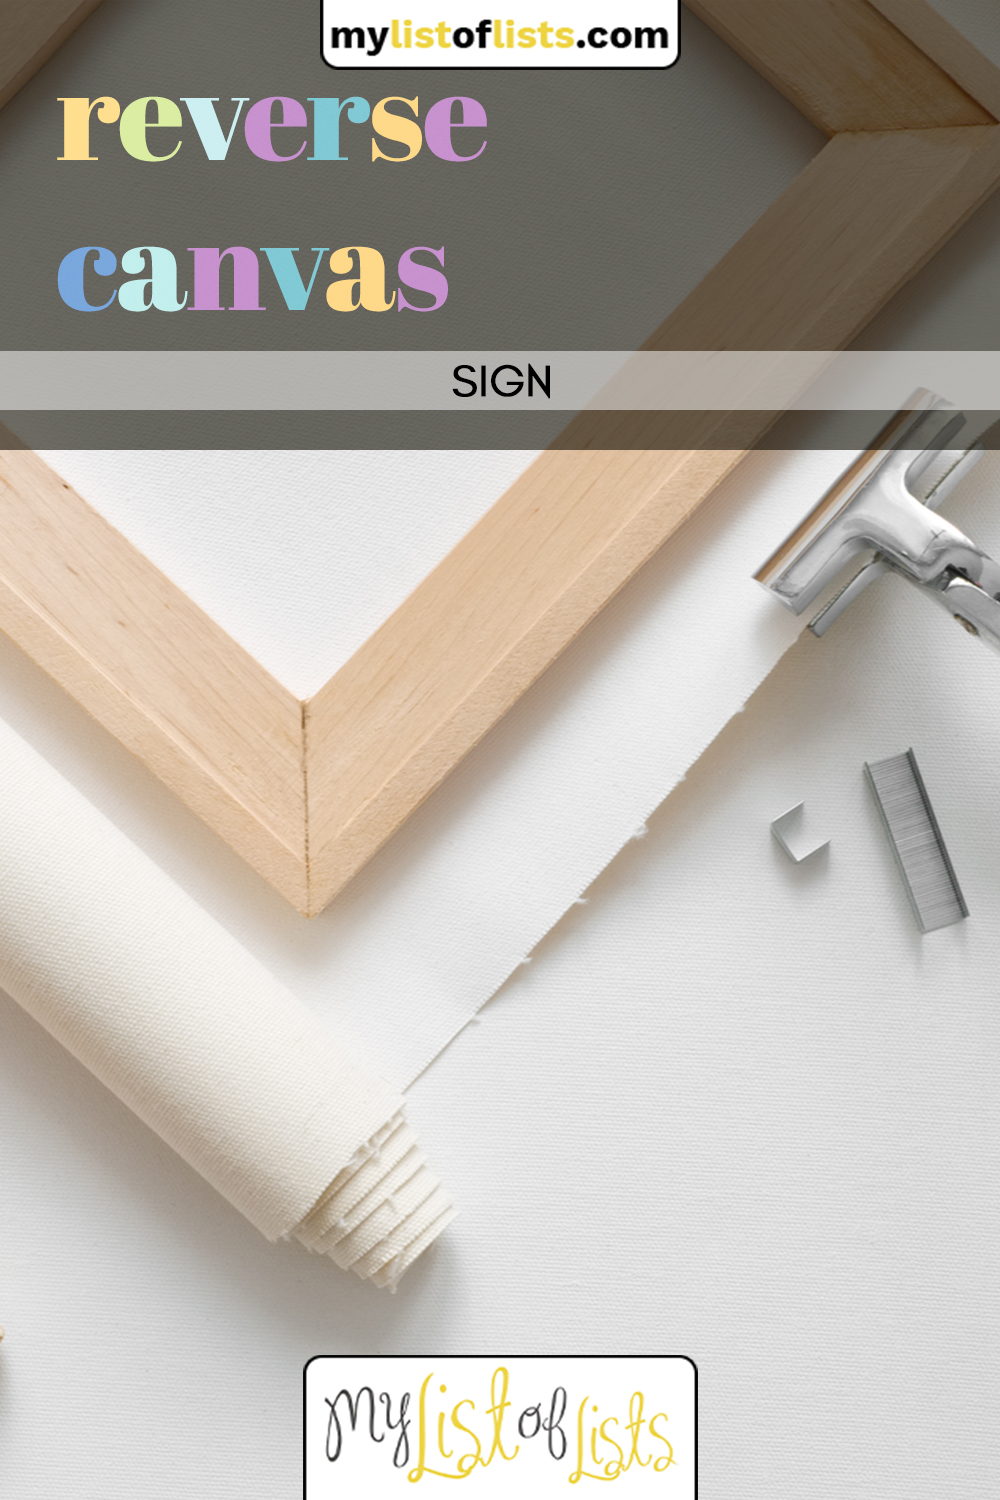 Looking to update the wall decor of your home? Check out this reverse canvas sign trick that you can recreate in your own home for less than 30 minutes and $10. #diy #homedecor #mylistoflistsblog